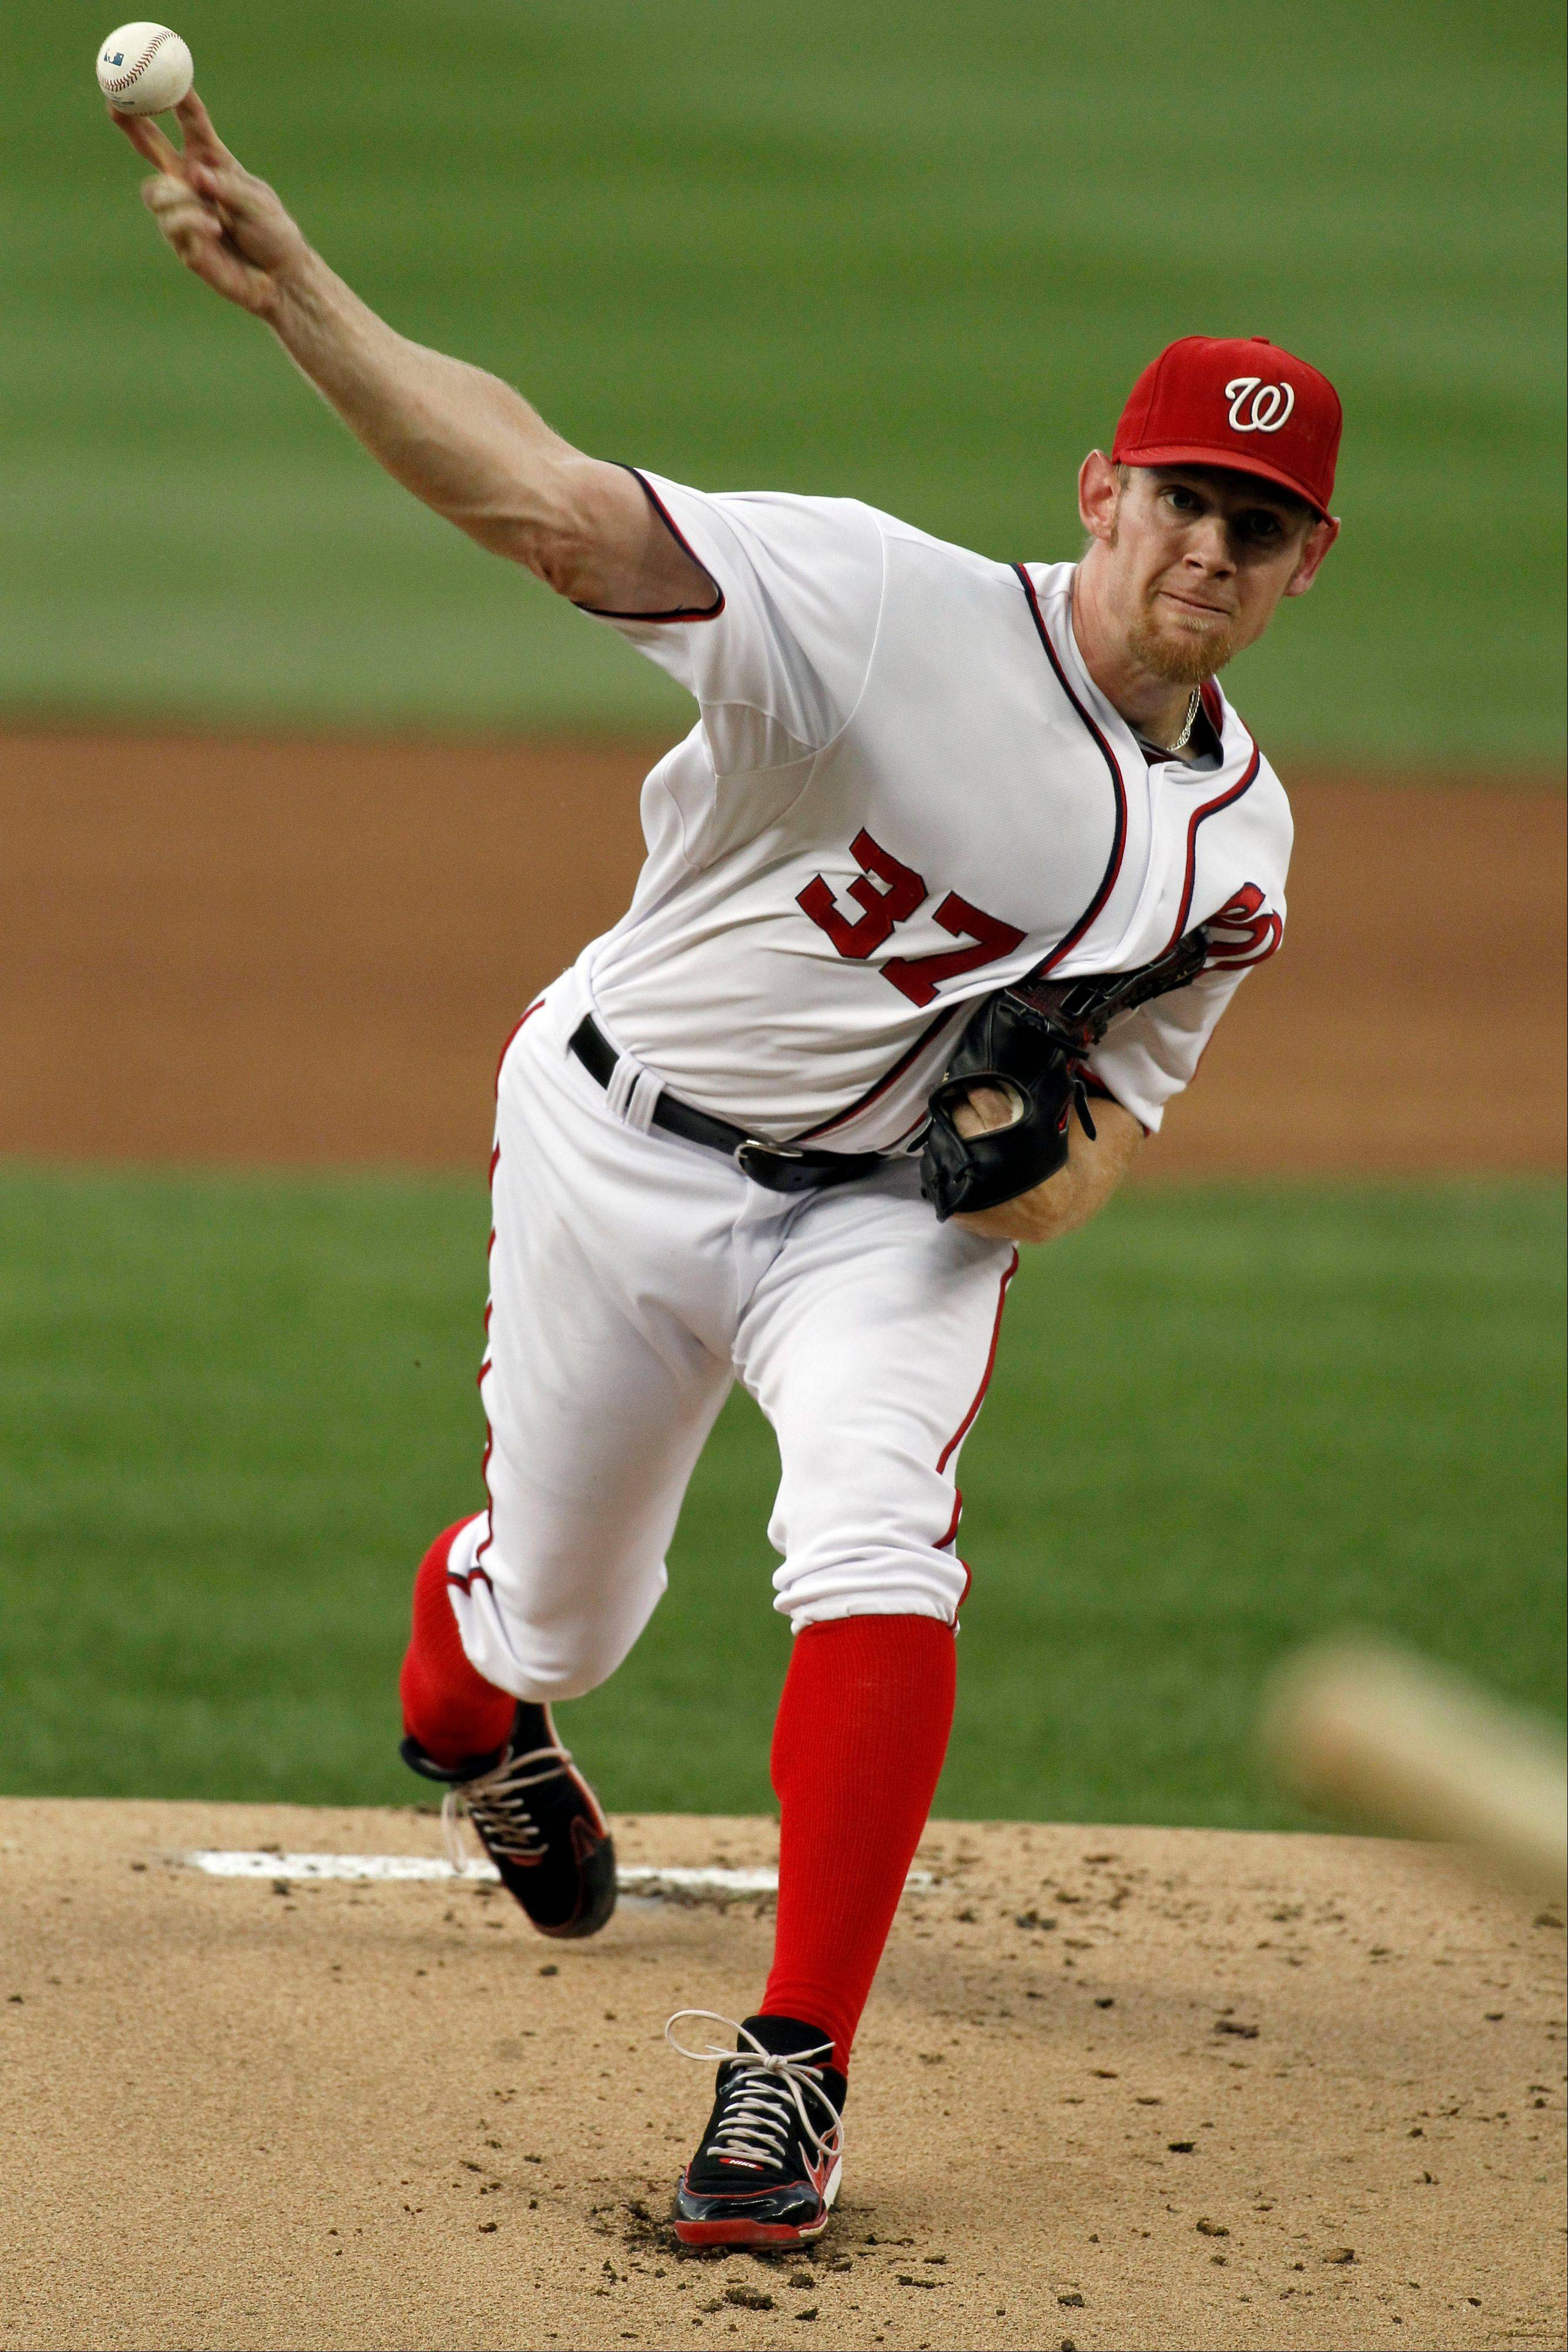 Nationals starting pitcher Stephen Strasburg throws against the Atlanta Braves during the first inning on Tuesday in Washington, D.C.